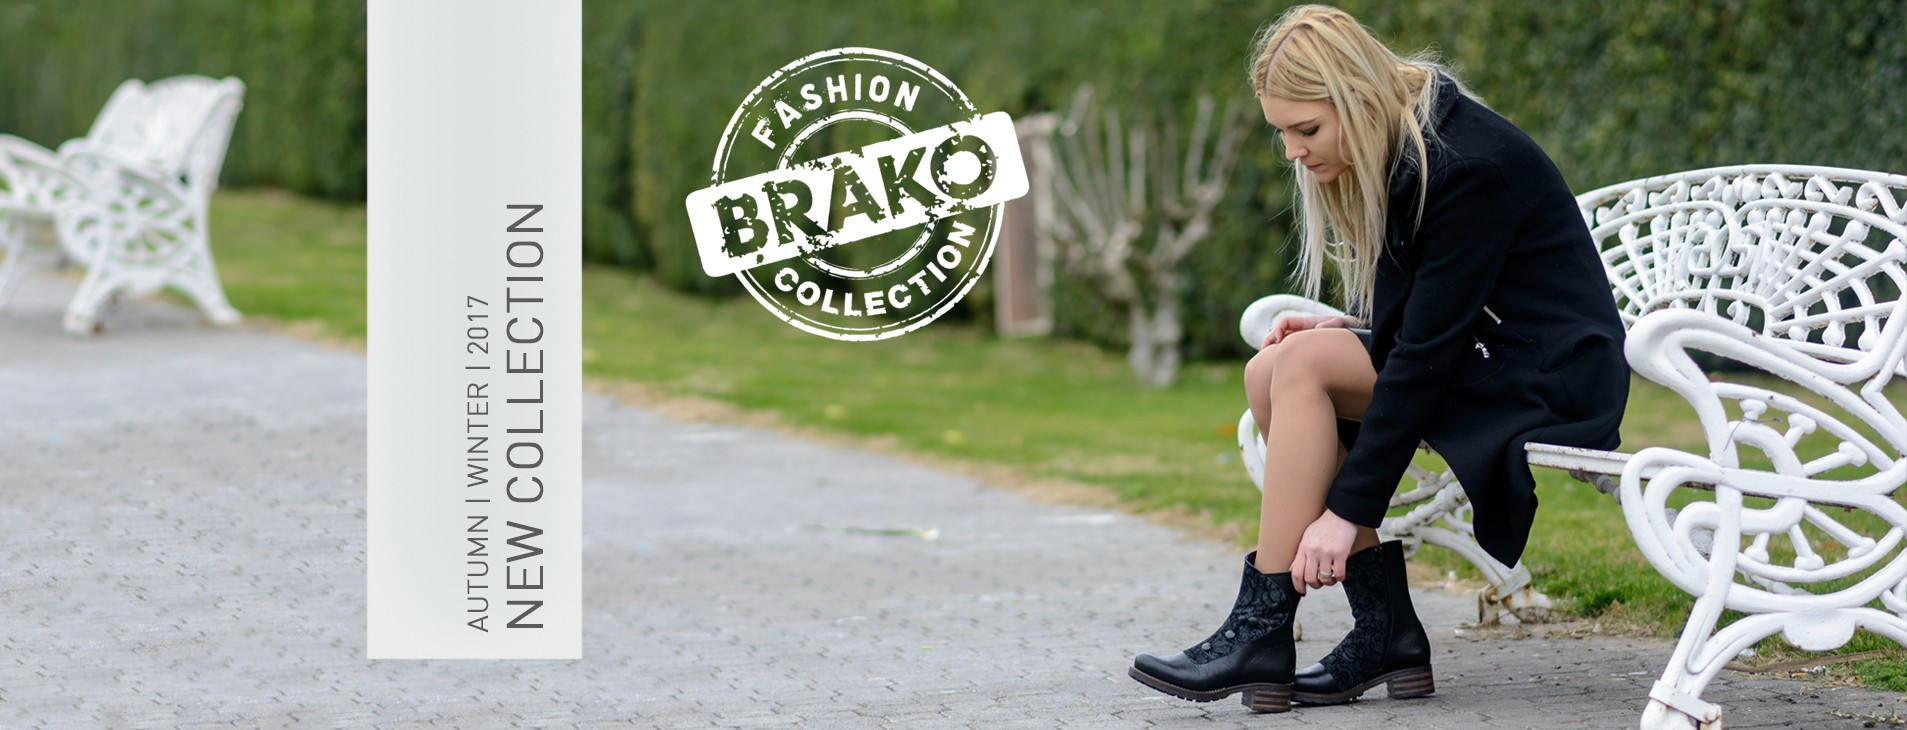 Autum Winter 2017 Brako